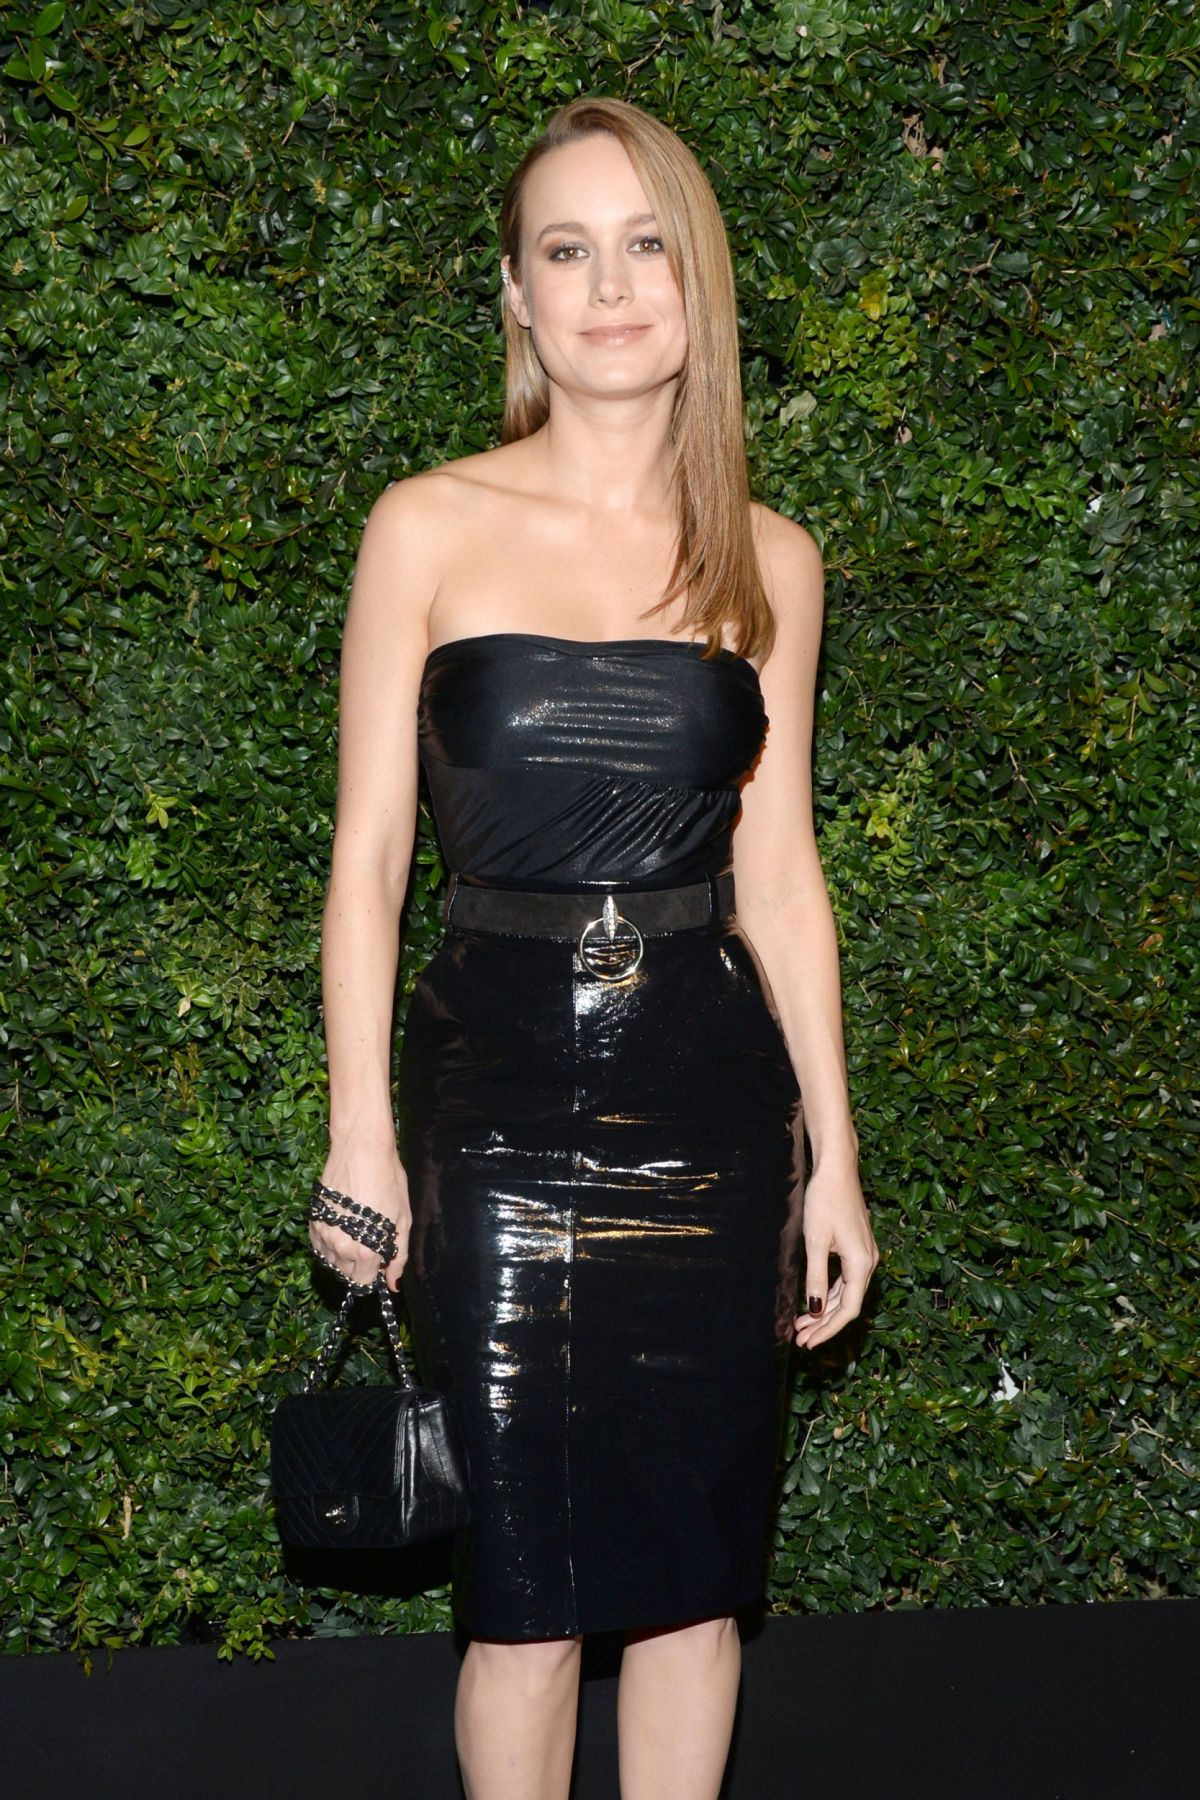 BRIE LARSON at Chanel and Charles Finch Pre-oscar Party in Los Angeles 02/27/2016